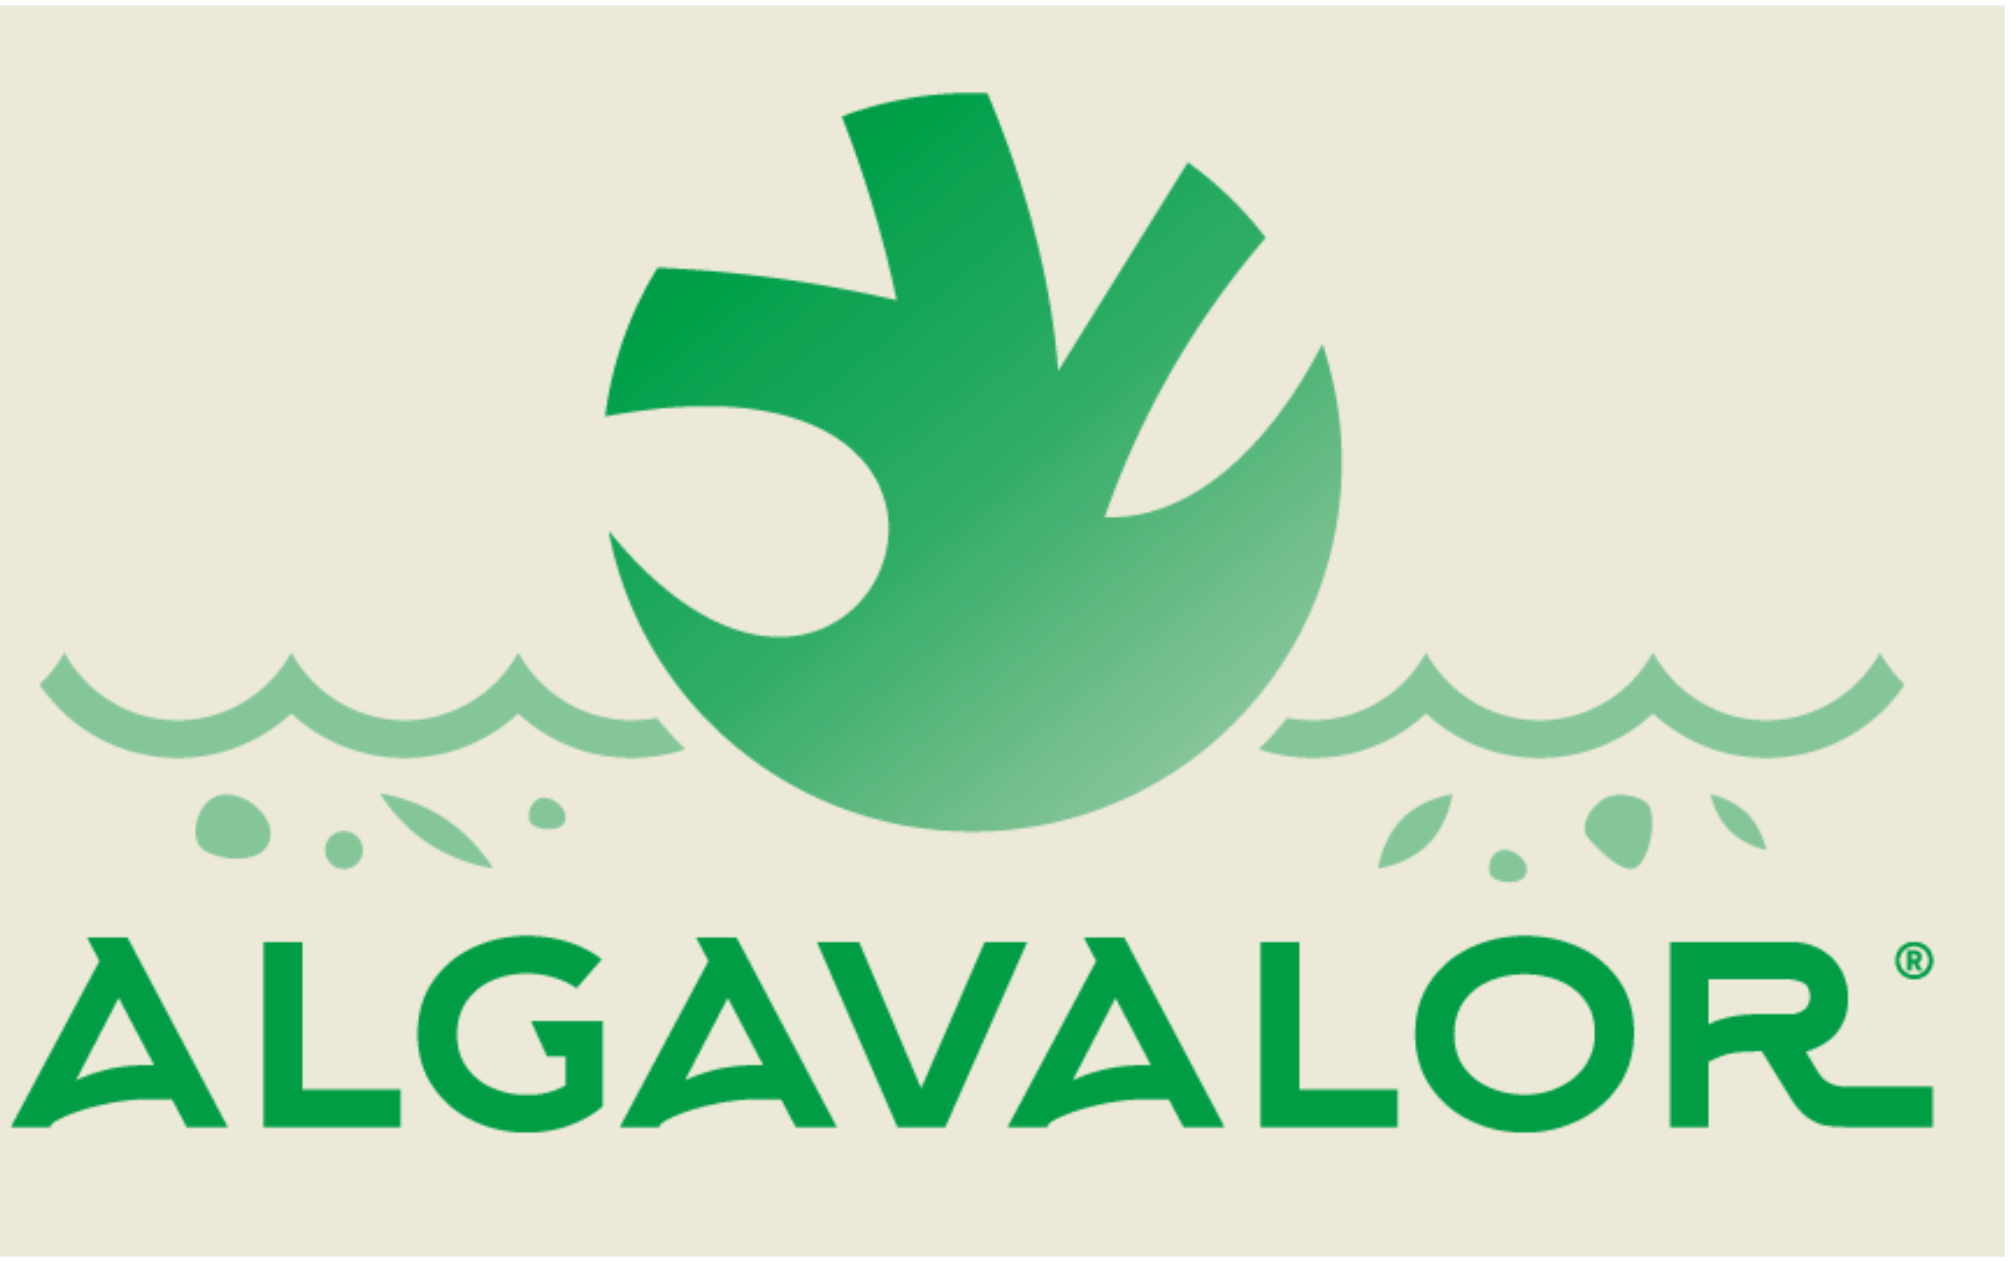 ALGAVALOR